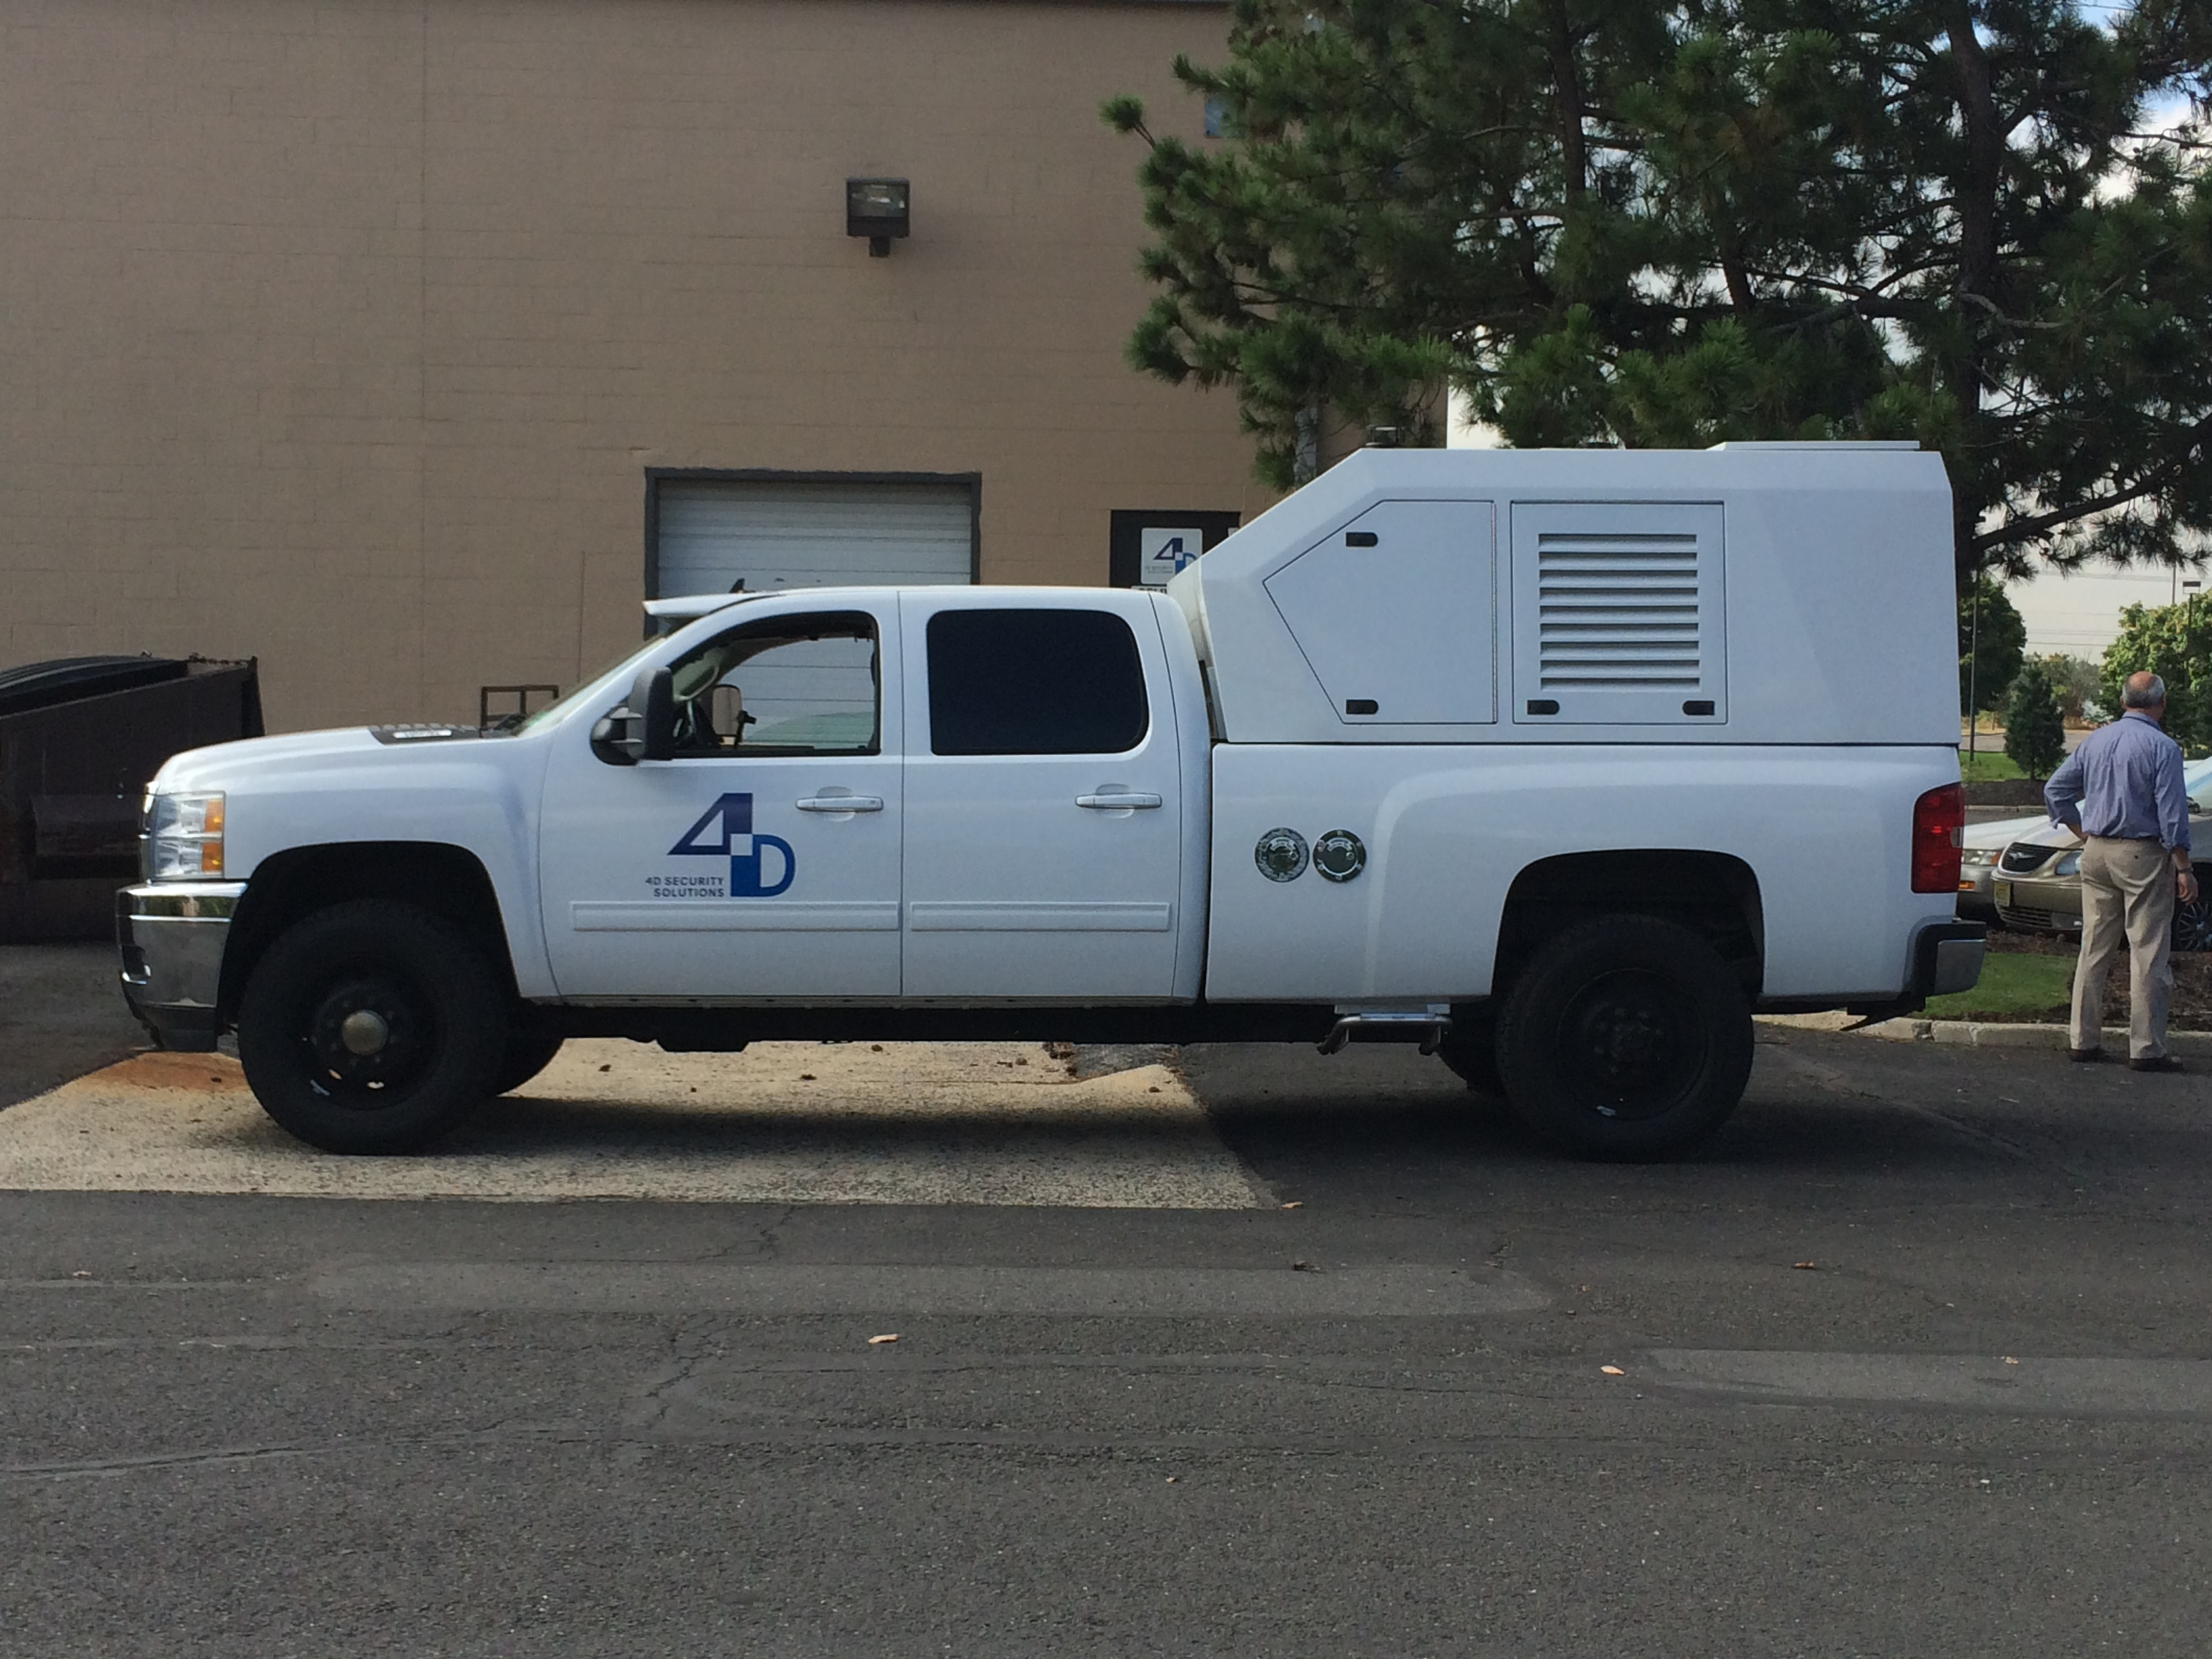 Mobile Surveillance Unit